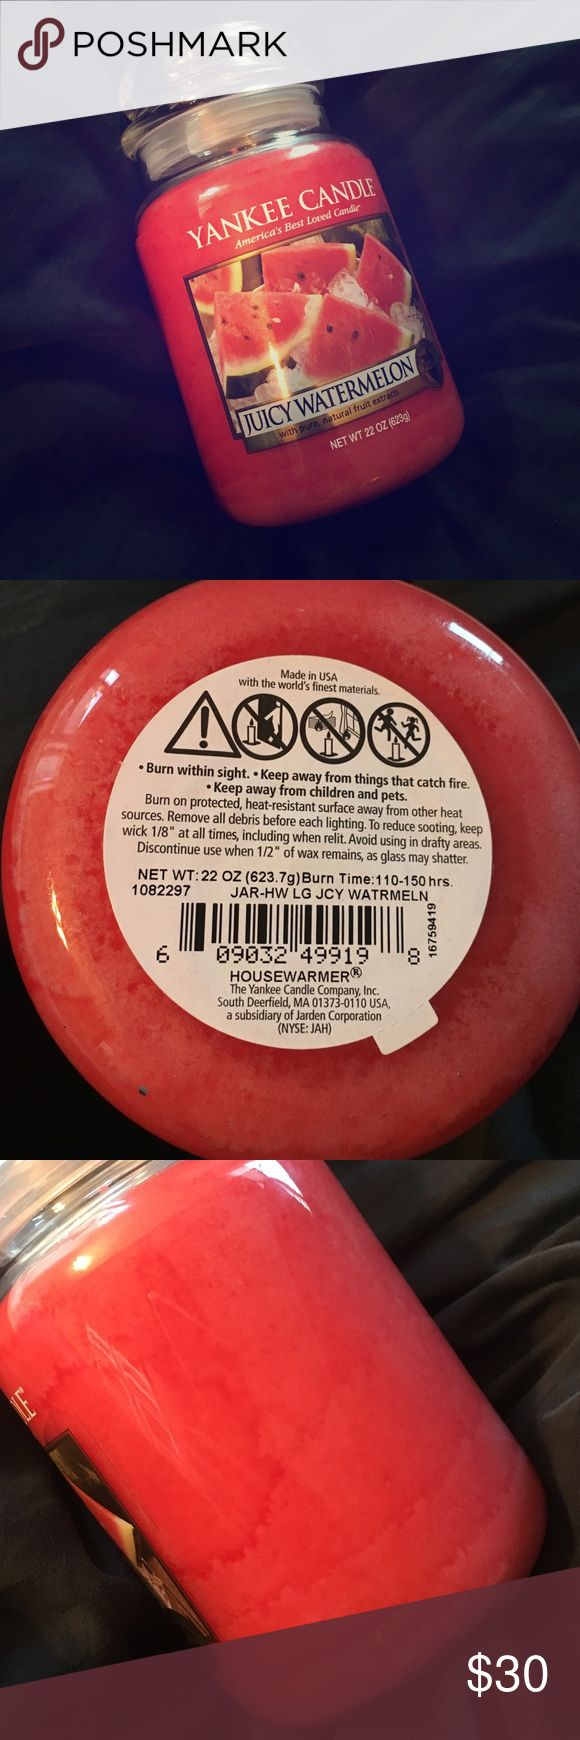 Juicy Watermelon Yankee Candle BRAND NEW 2016 Yankee Candle in the scent Juicy Watermelon 🍉💦 - Large Jar Candle weighing 22 ounces. Offers negotiable-DO NOT TROLL ON MY PRICE YOU WILL BE REPORTED AND BLOCKED Yankee Candle Other